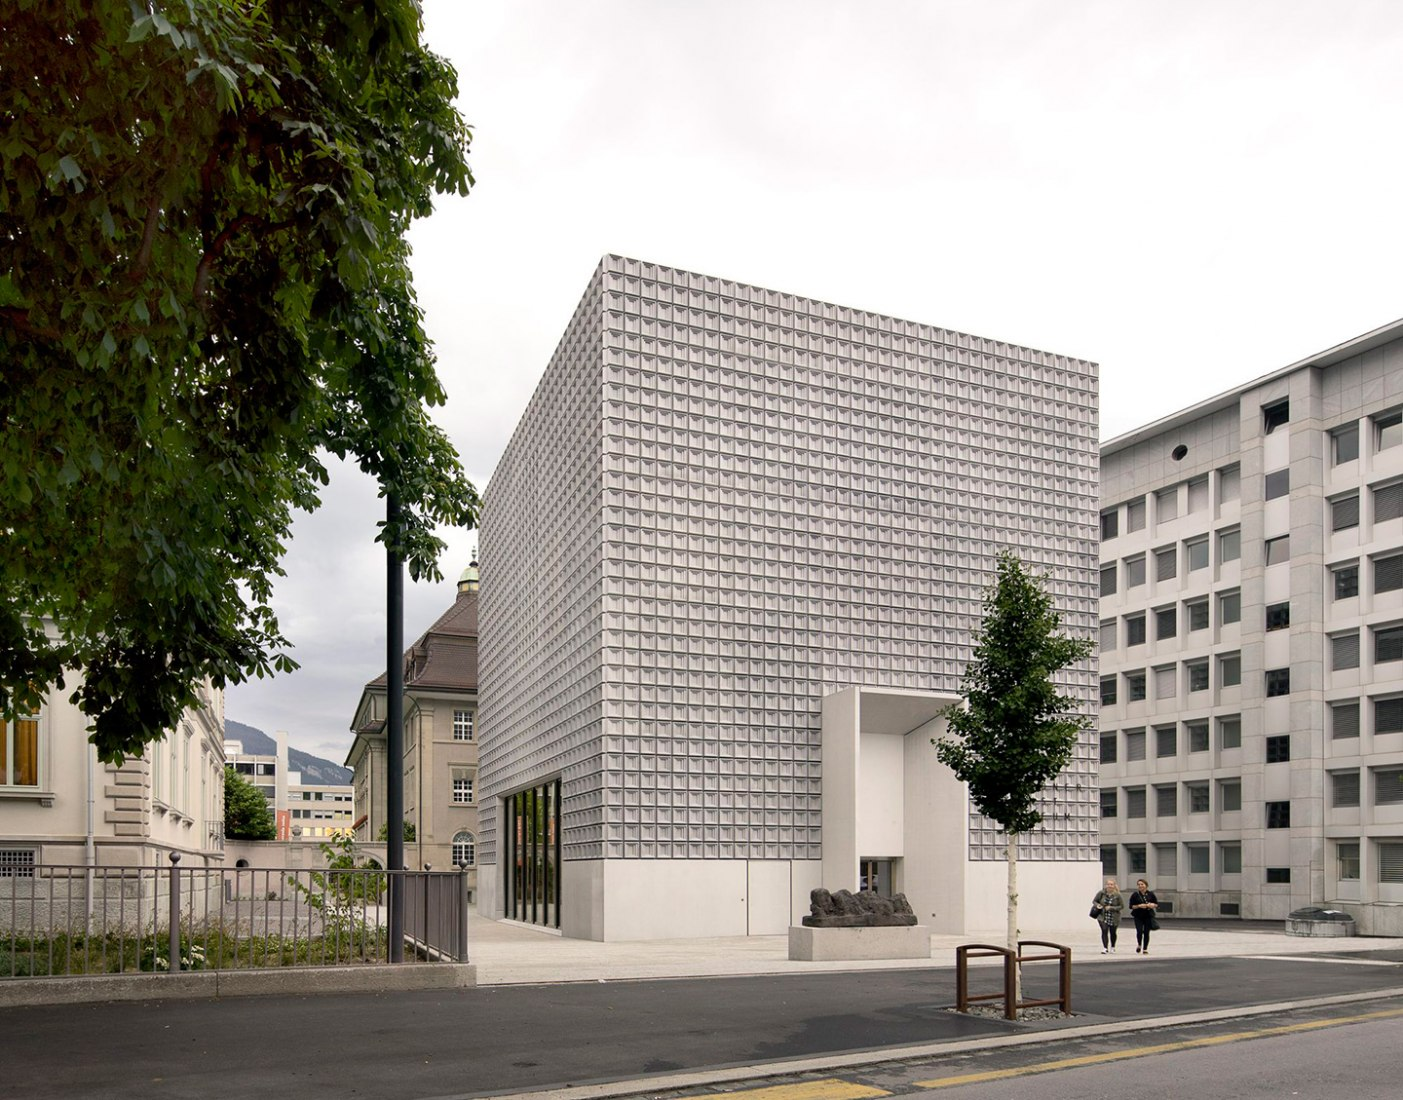 Exterior view. Bündner Kunstmuseum by Barozzi&Veiga. Photography © Simon Menges.